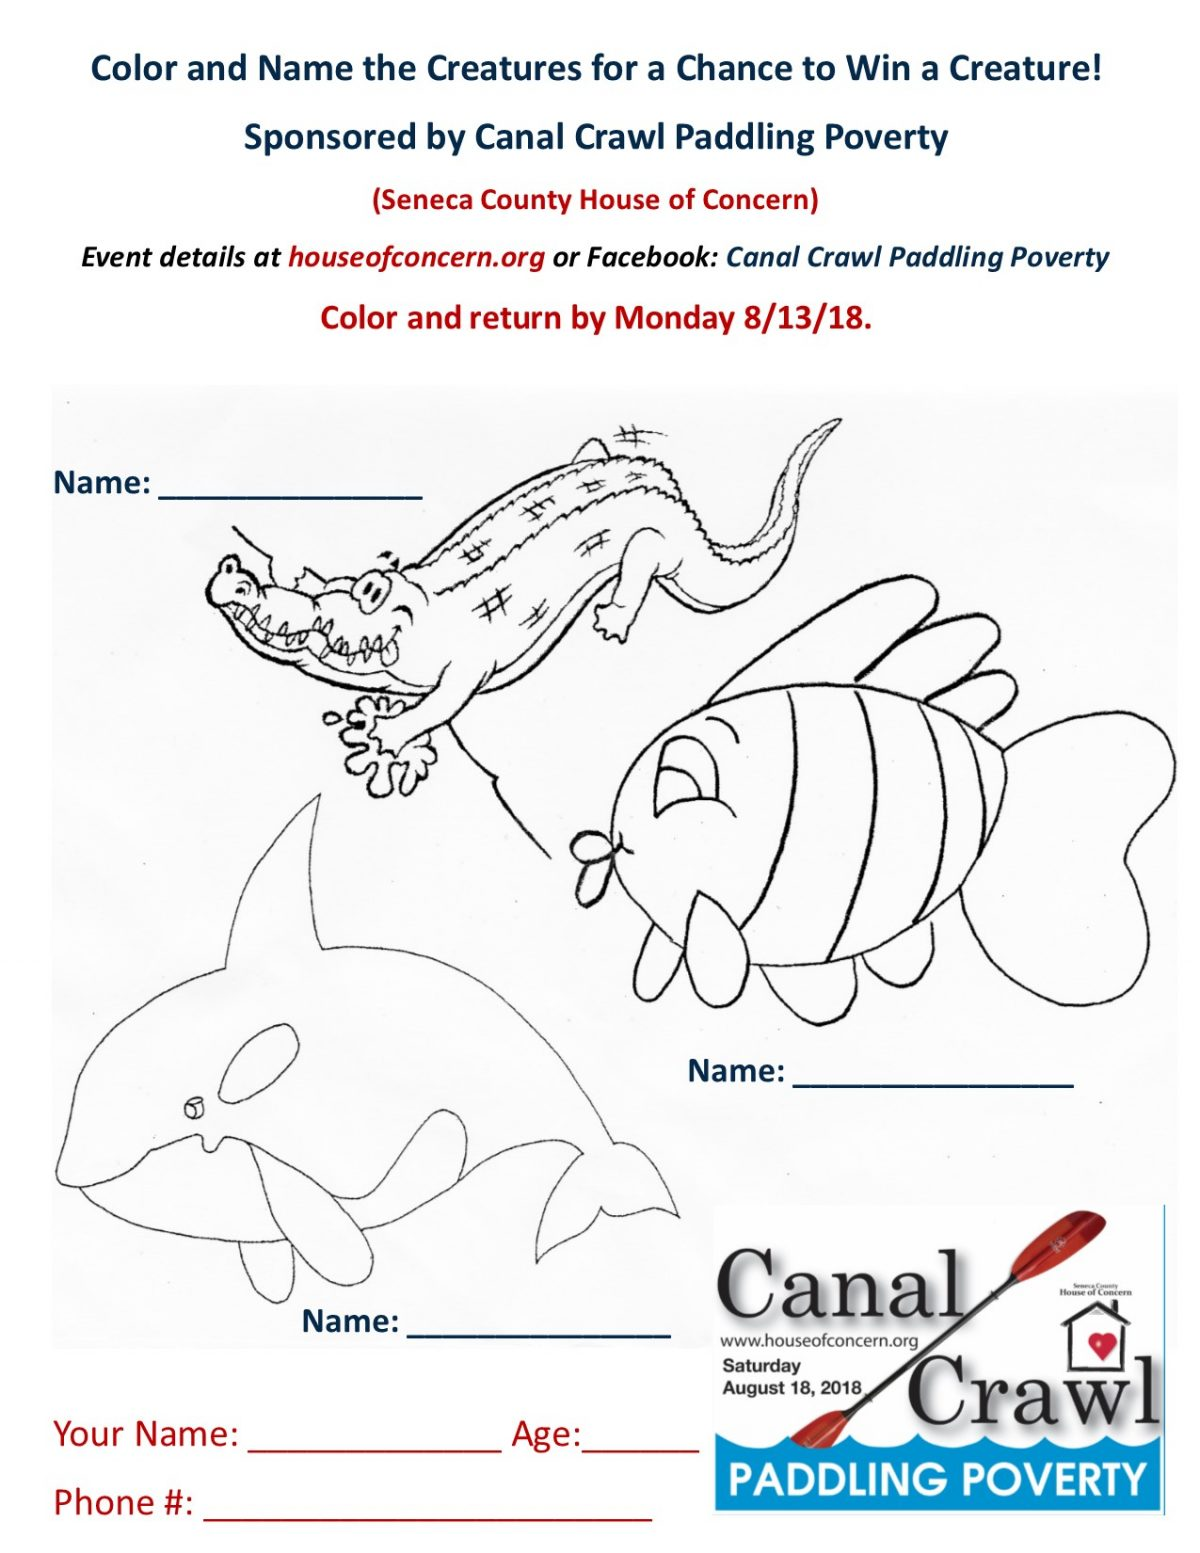 Canal Crawl Coloring Contest Announced